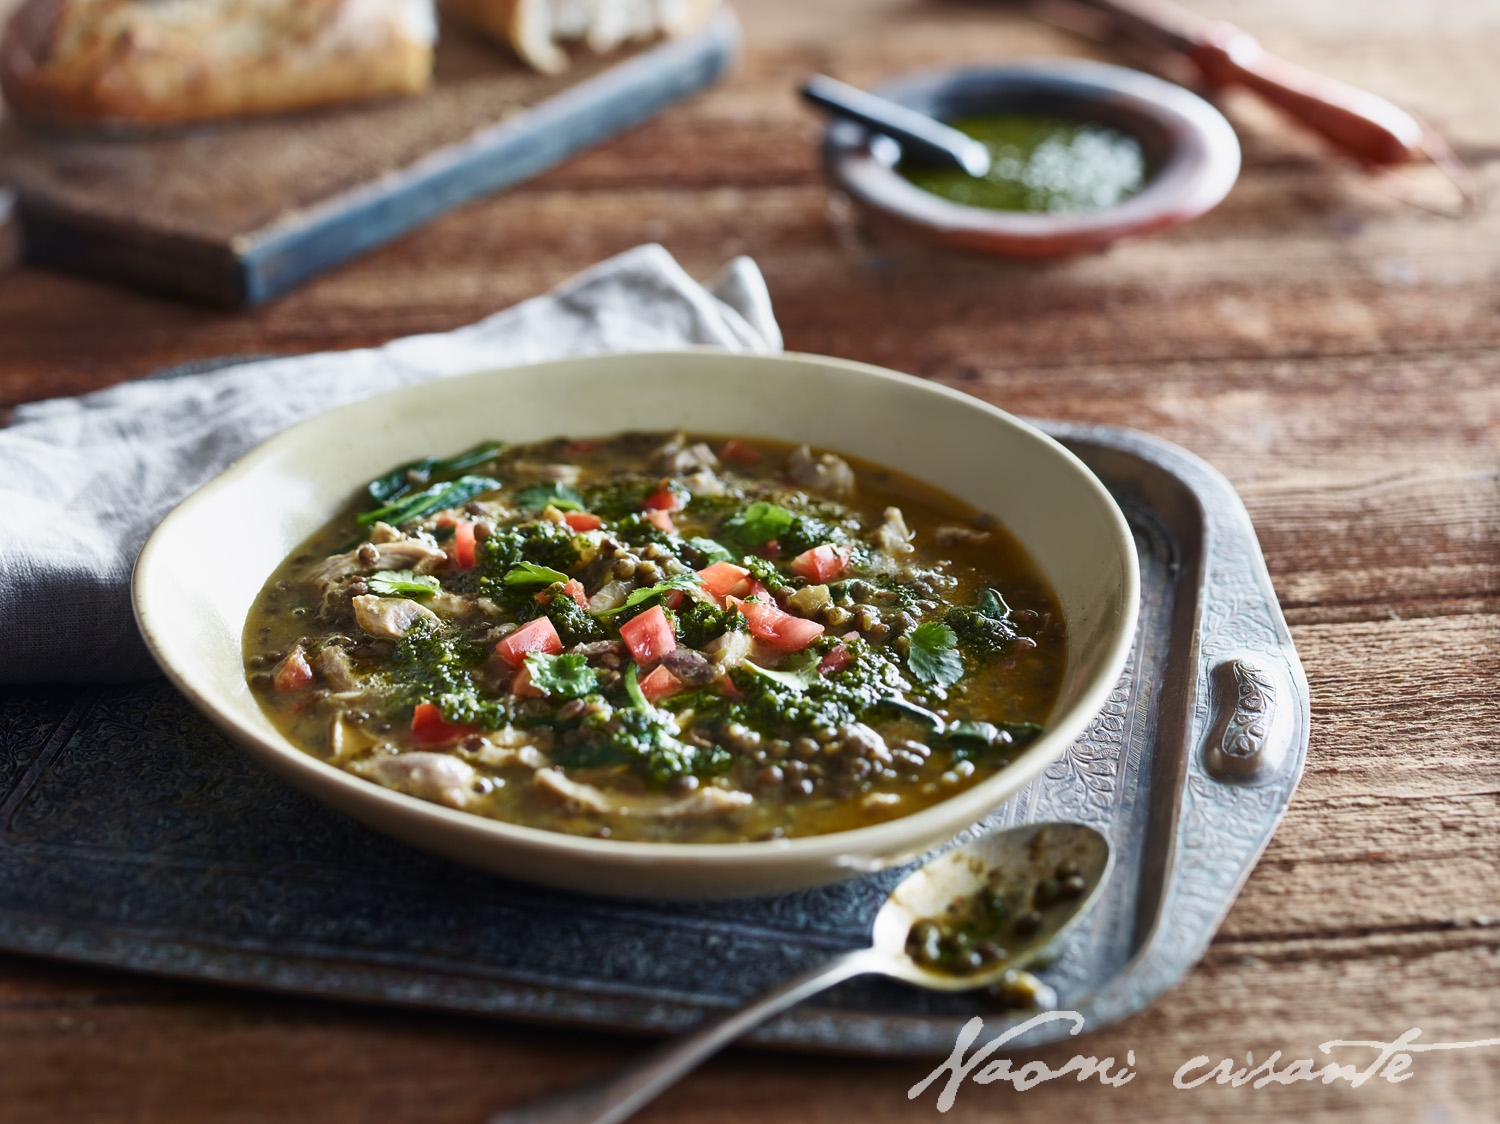 Moroccan Chicken, Lentil and Spinach Soup with Coriander Oil